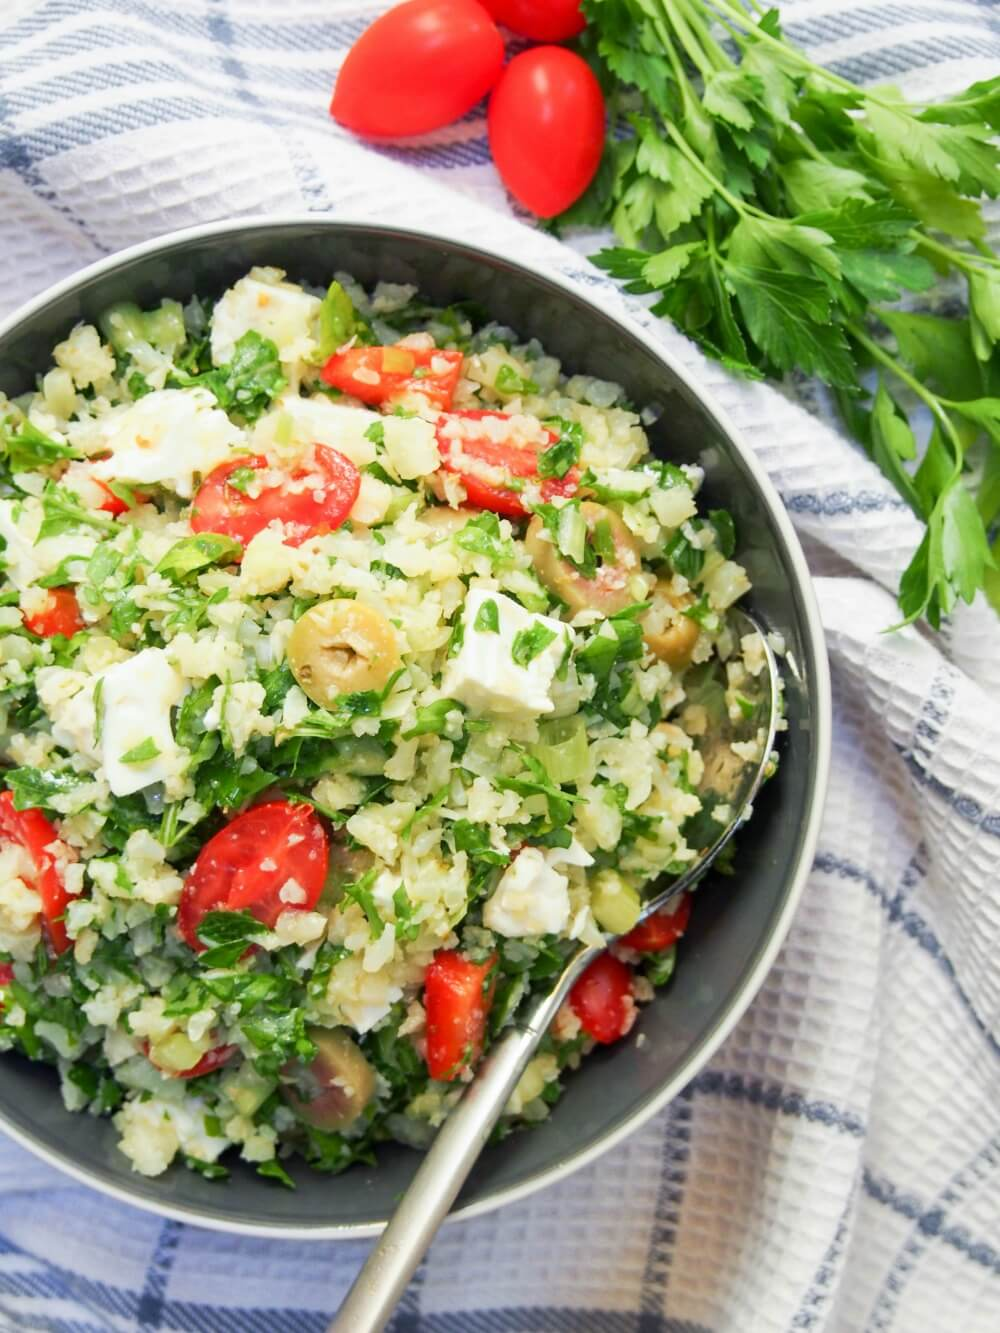 This Greek-style cauliflower rice salad is low on carbs and high on taste - full of Mediterranean flavors and so easy to make. It also packs well so is perfect for a picnic, potluck or lunchbox.